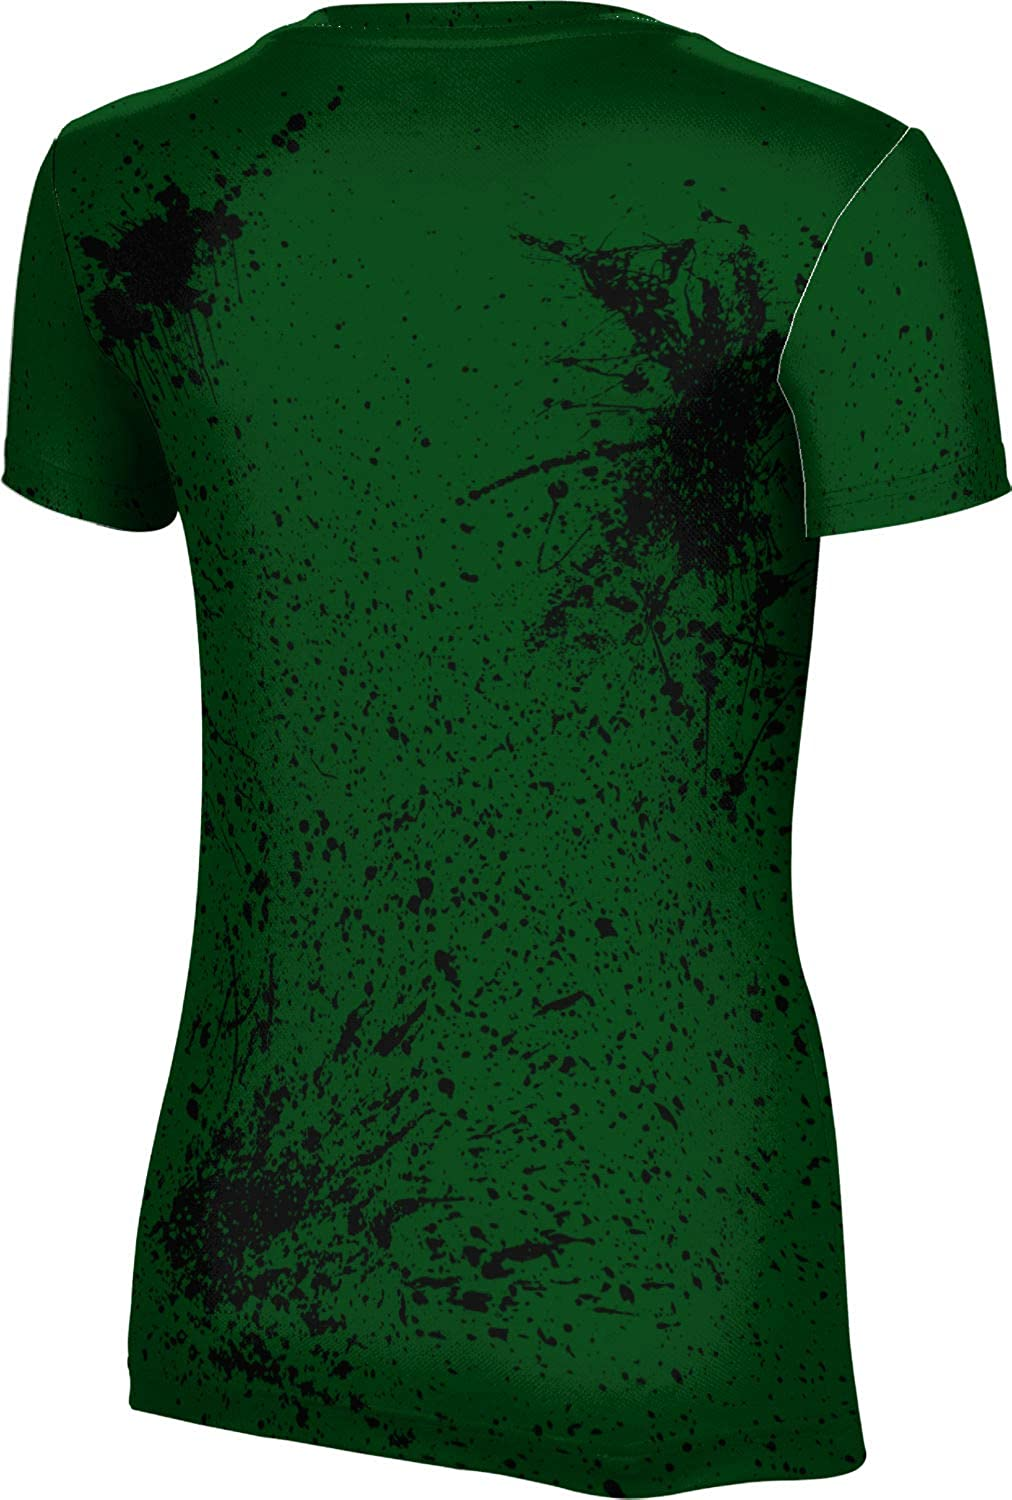 Splatter ProSphere Ohio University Girls Performance T-Shirt